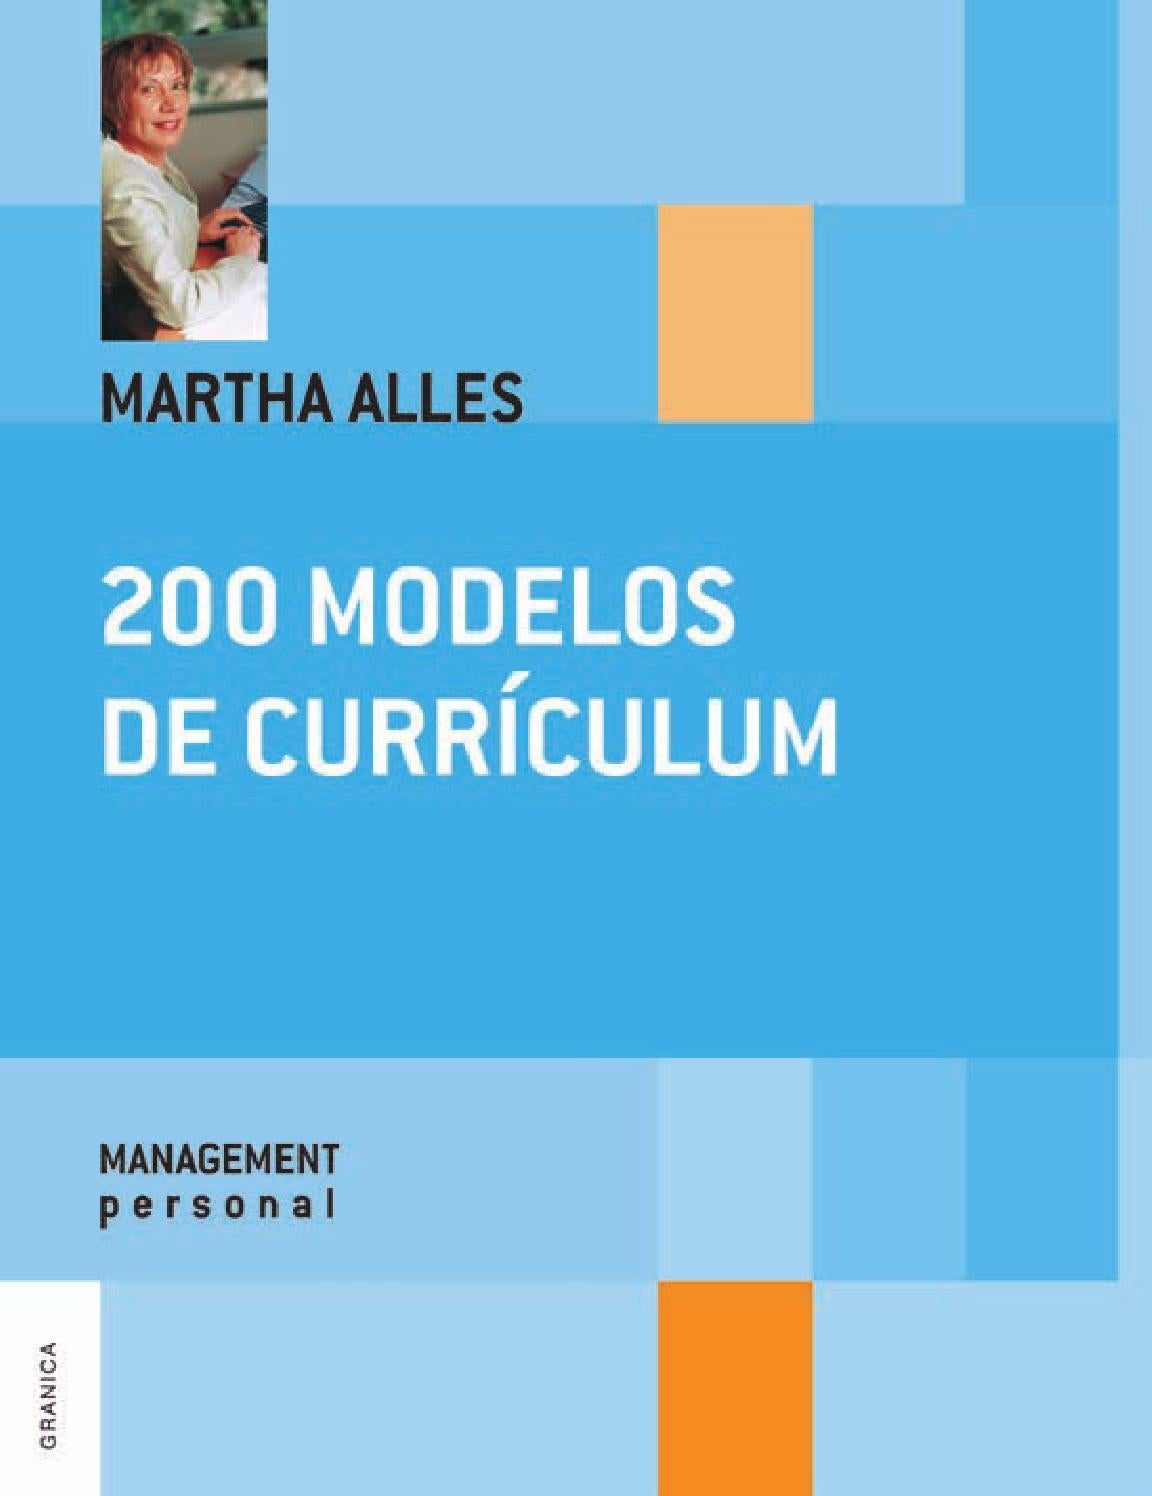 200 modelos de curriculum martha alles by Bill Goto - issuu